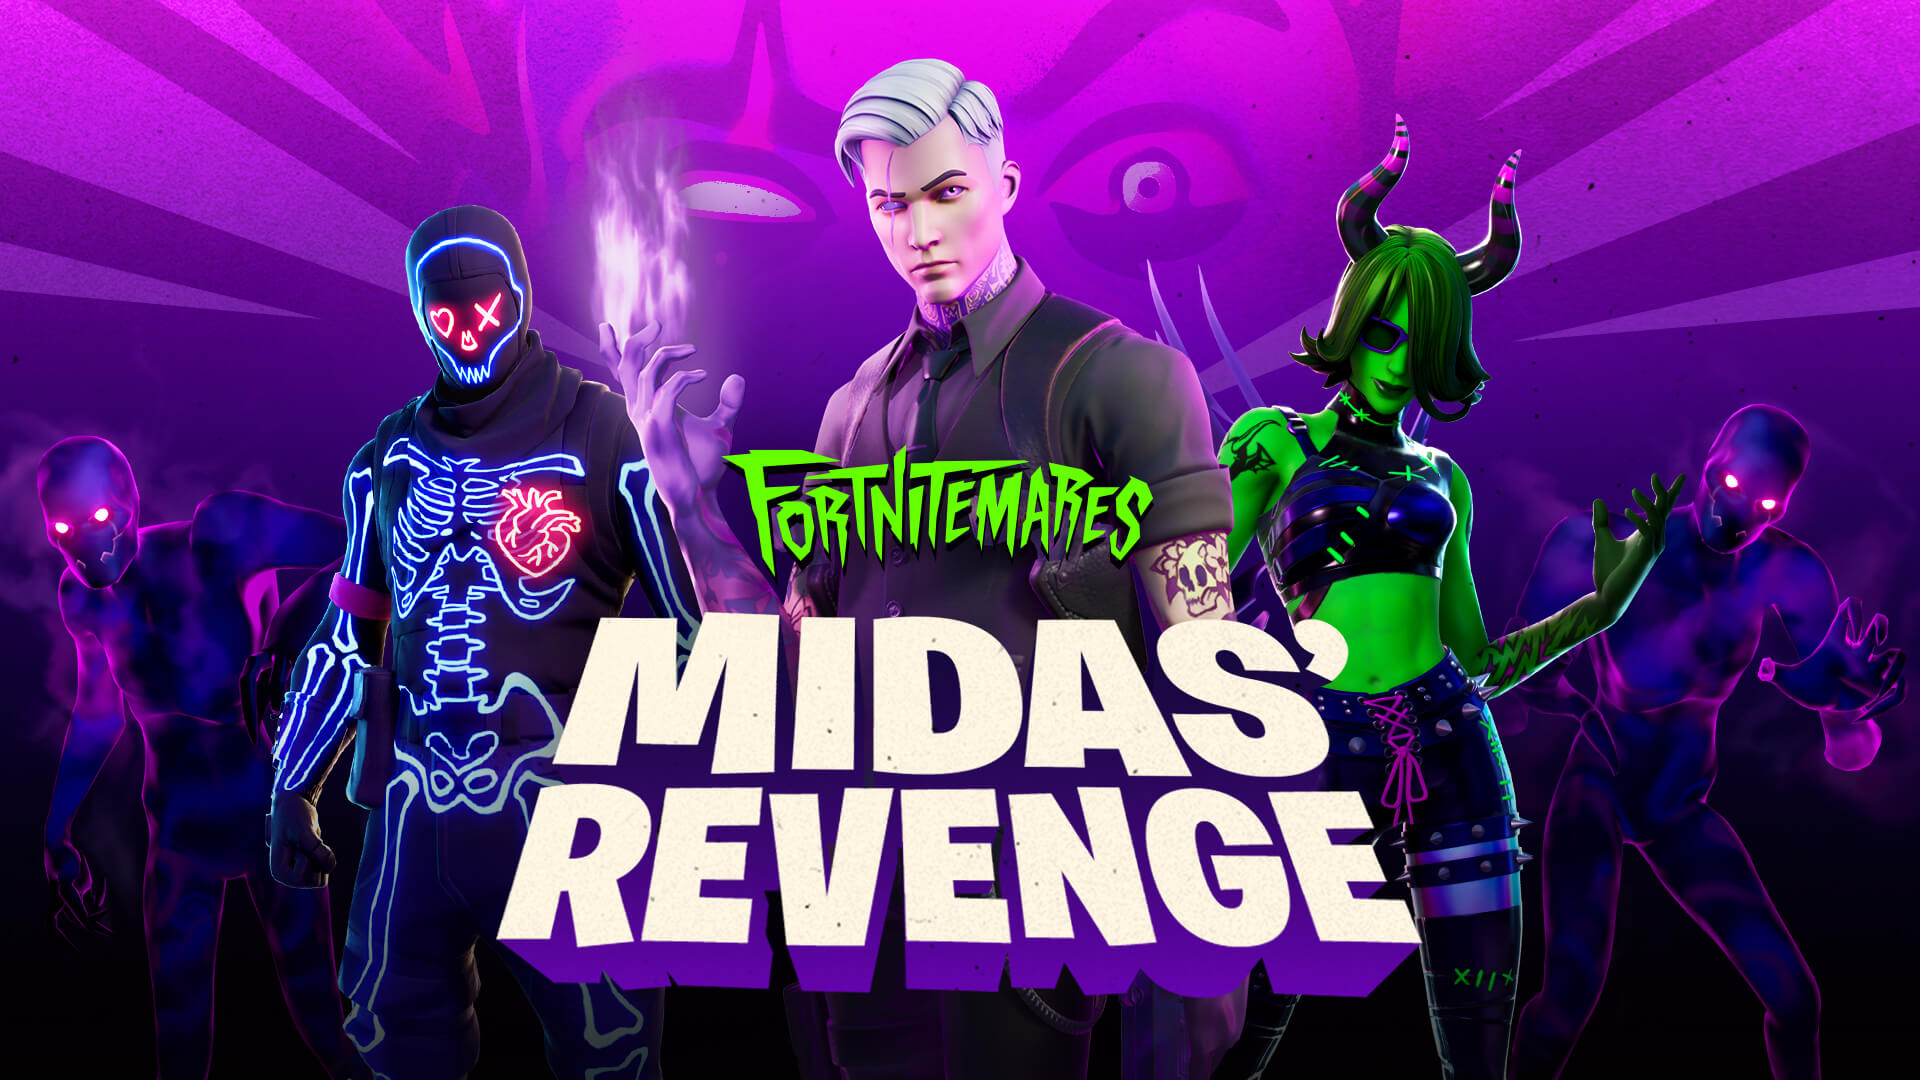 Join Shadow Midas To Get Revenge In Fortnitemares 2020